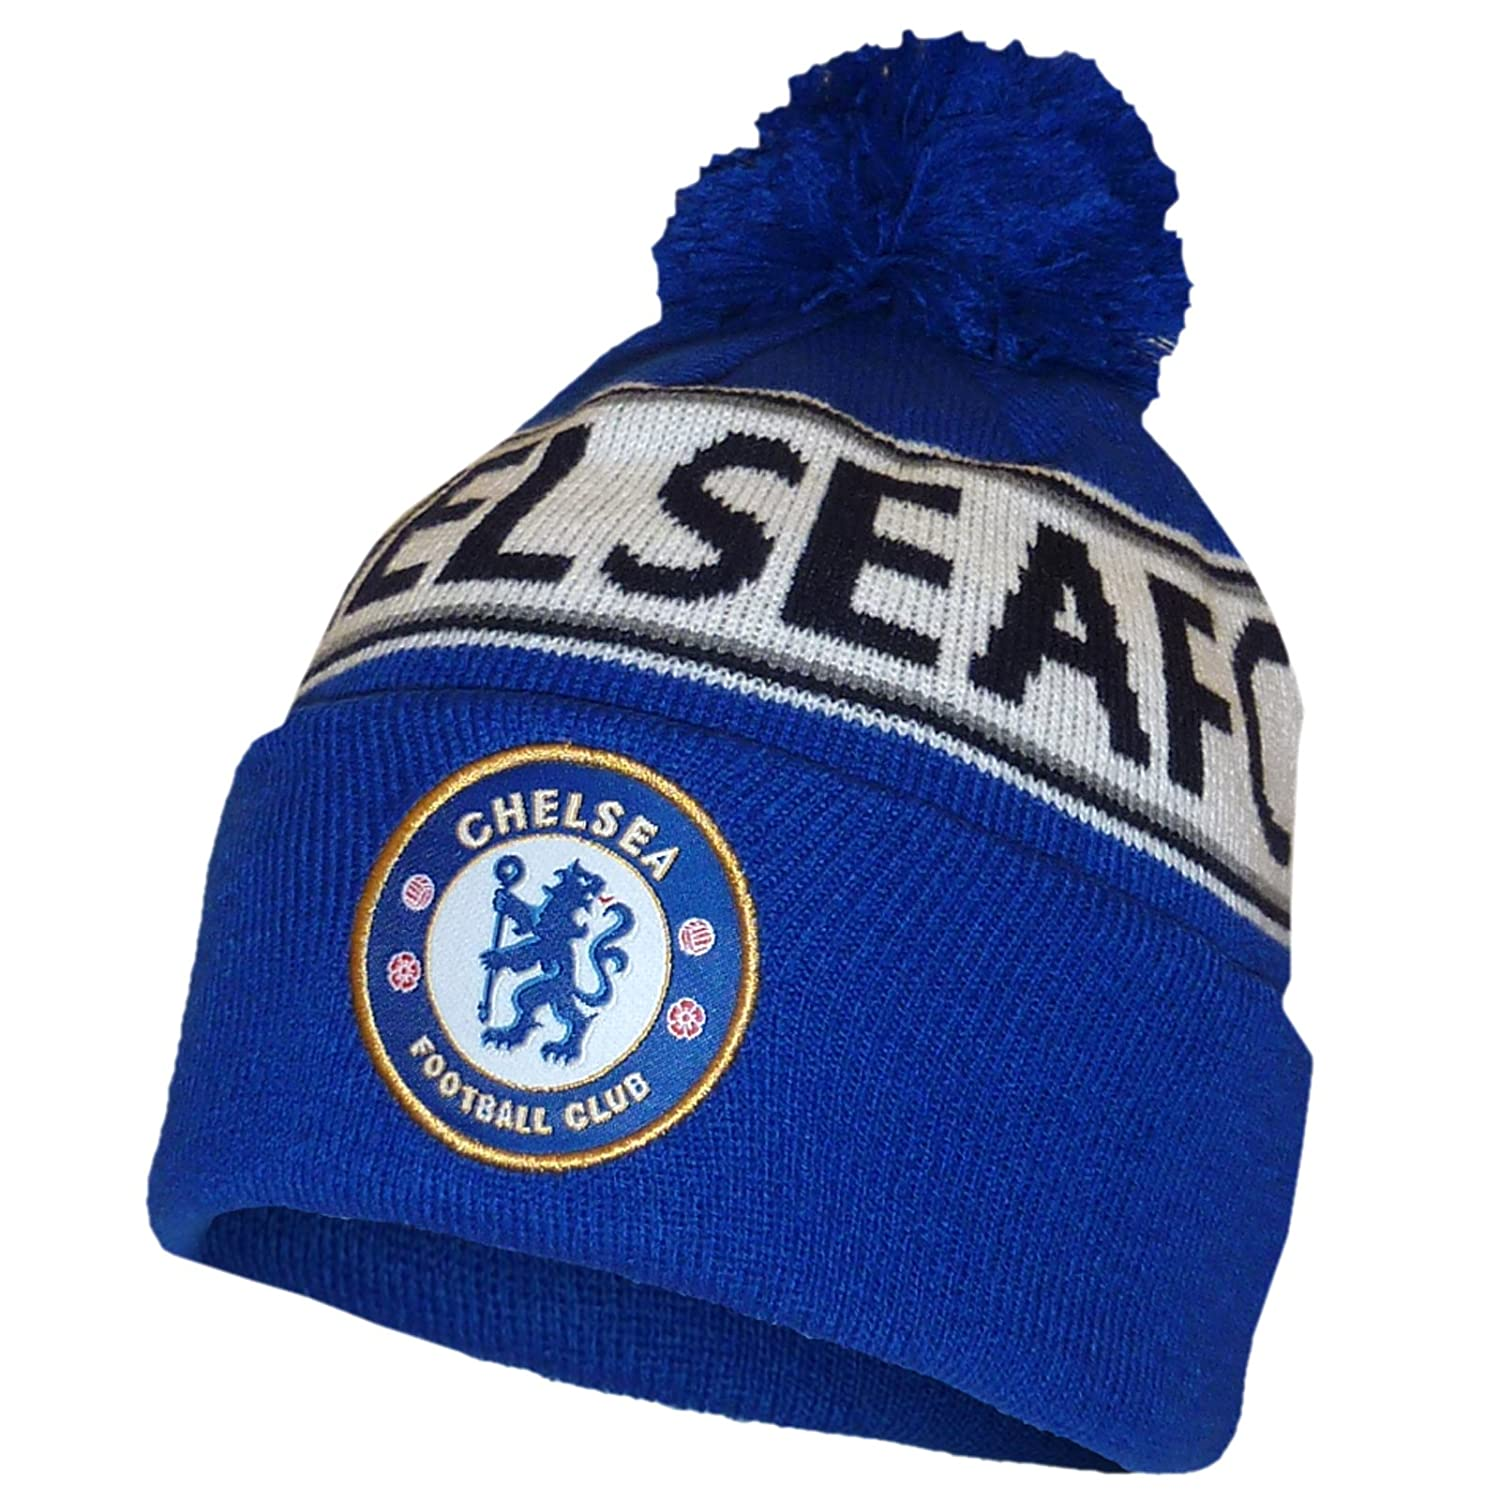 6a25a55c709ec Chelsea F.C. Knitted Bobble Hat  Amazon.co.uk  Sports   Outdoors